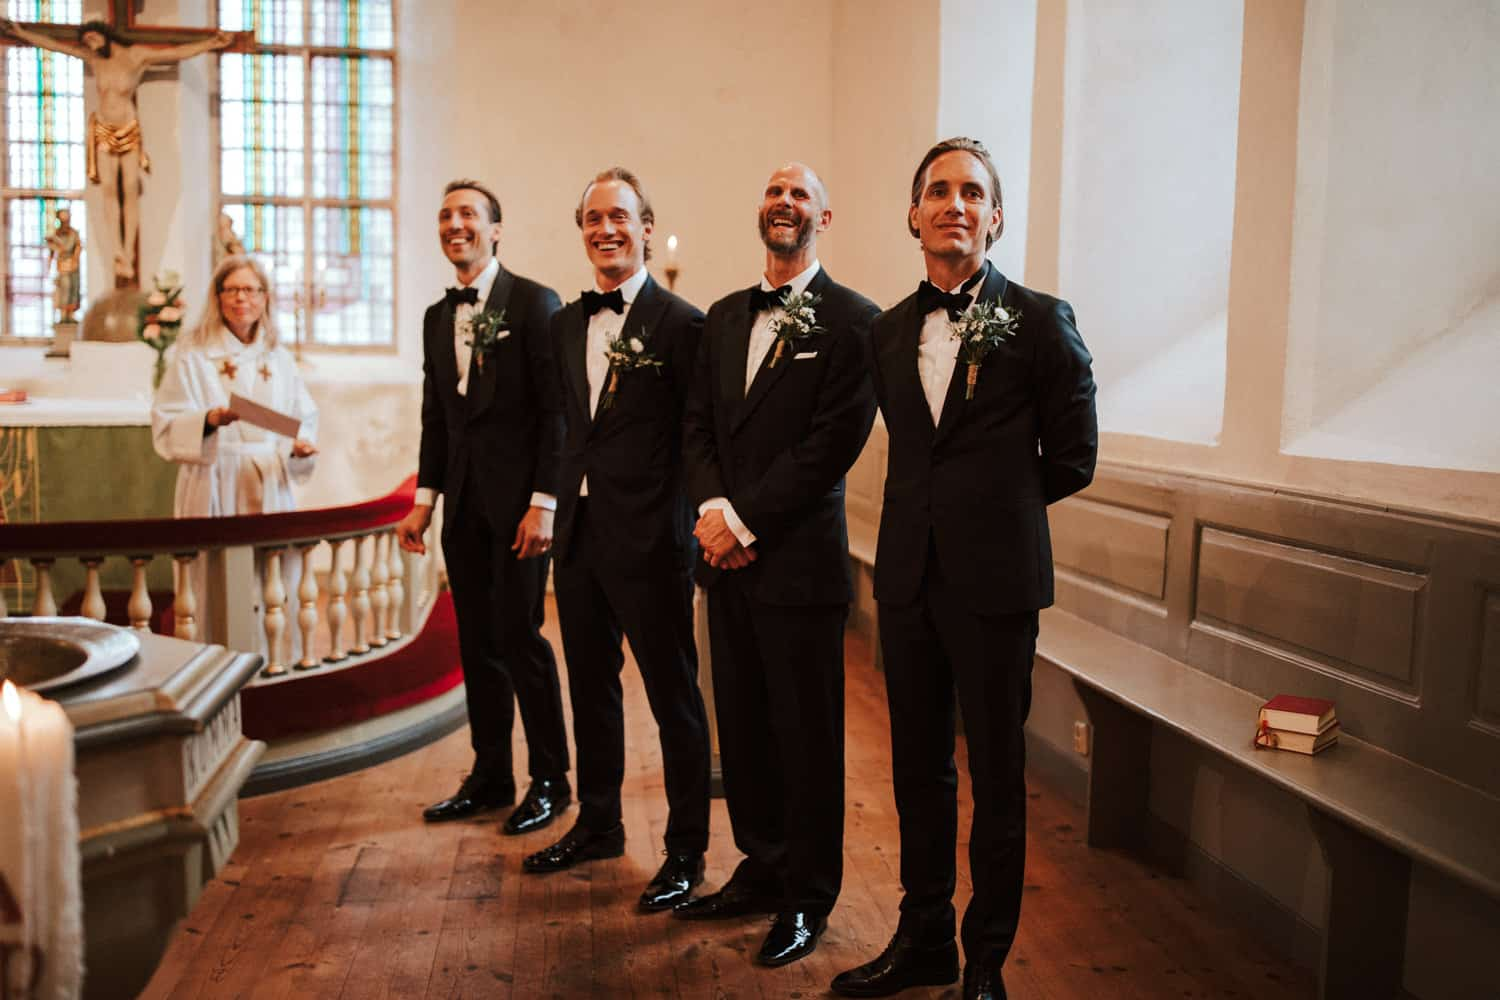 The groomsmen are standing in line and are smiling.